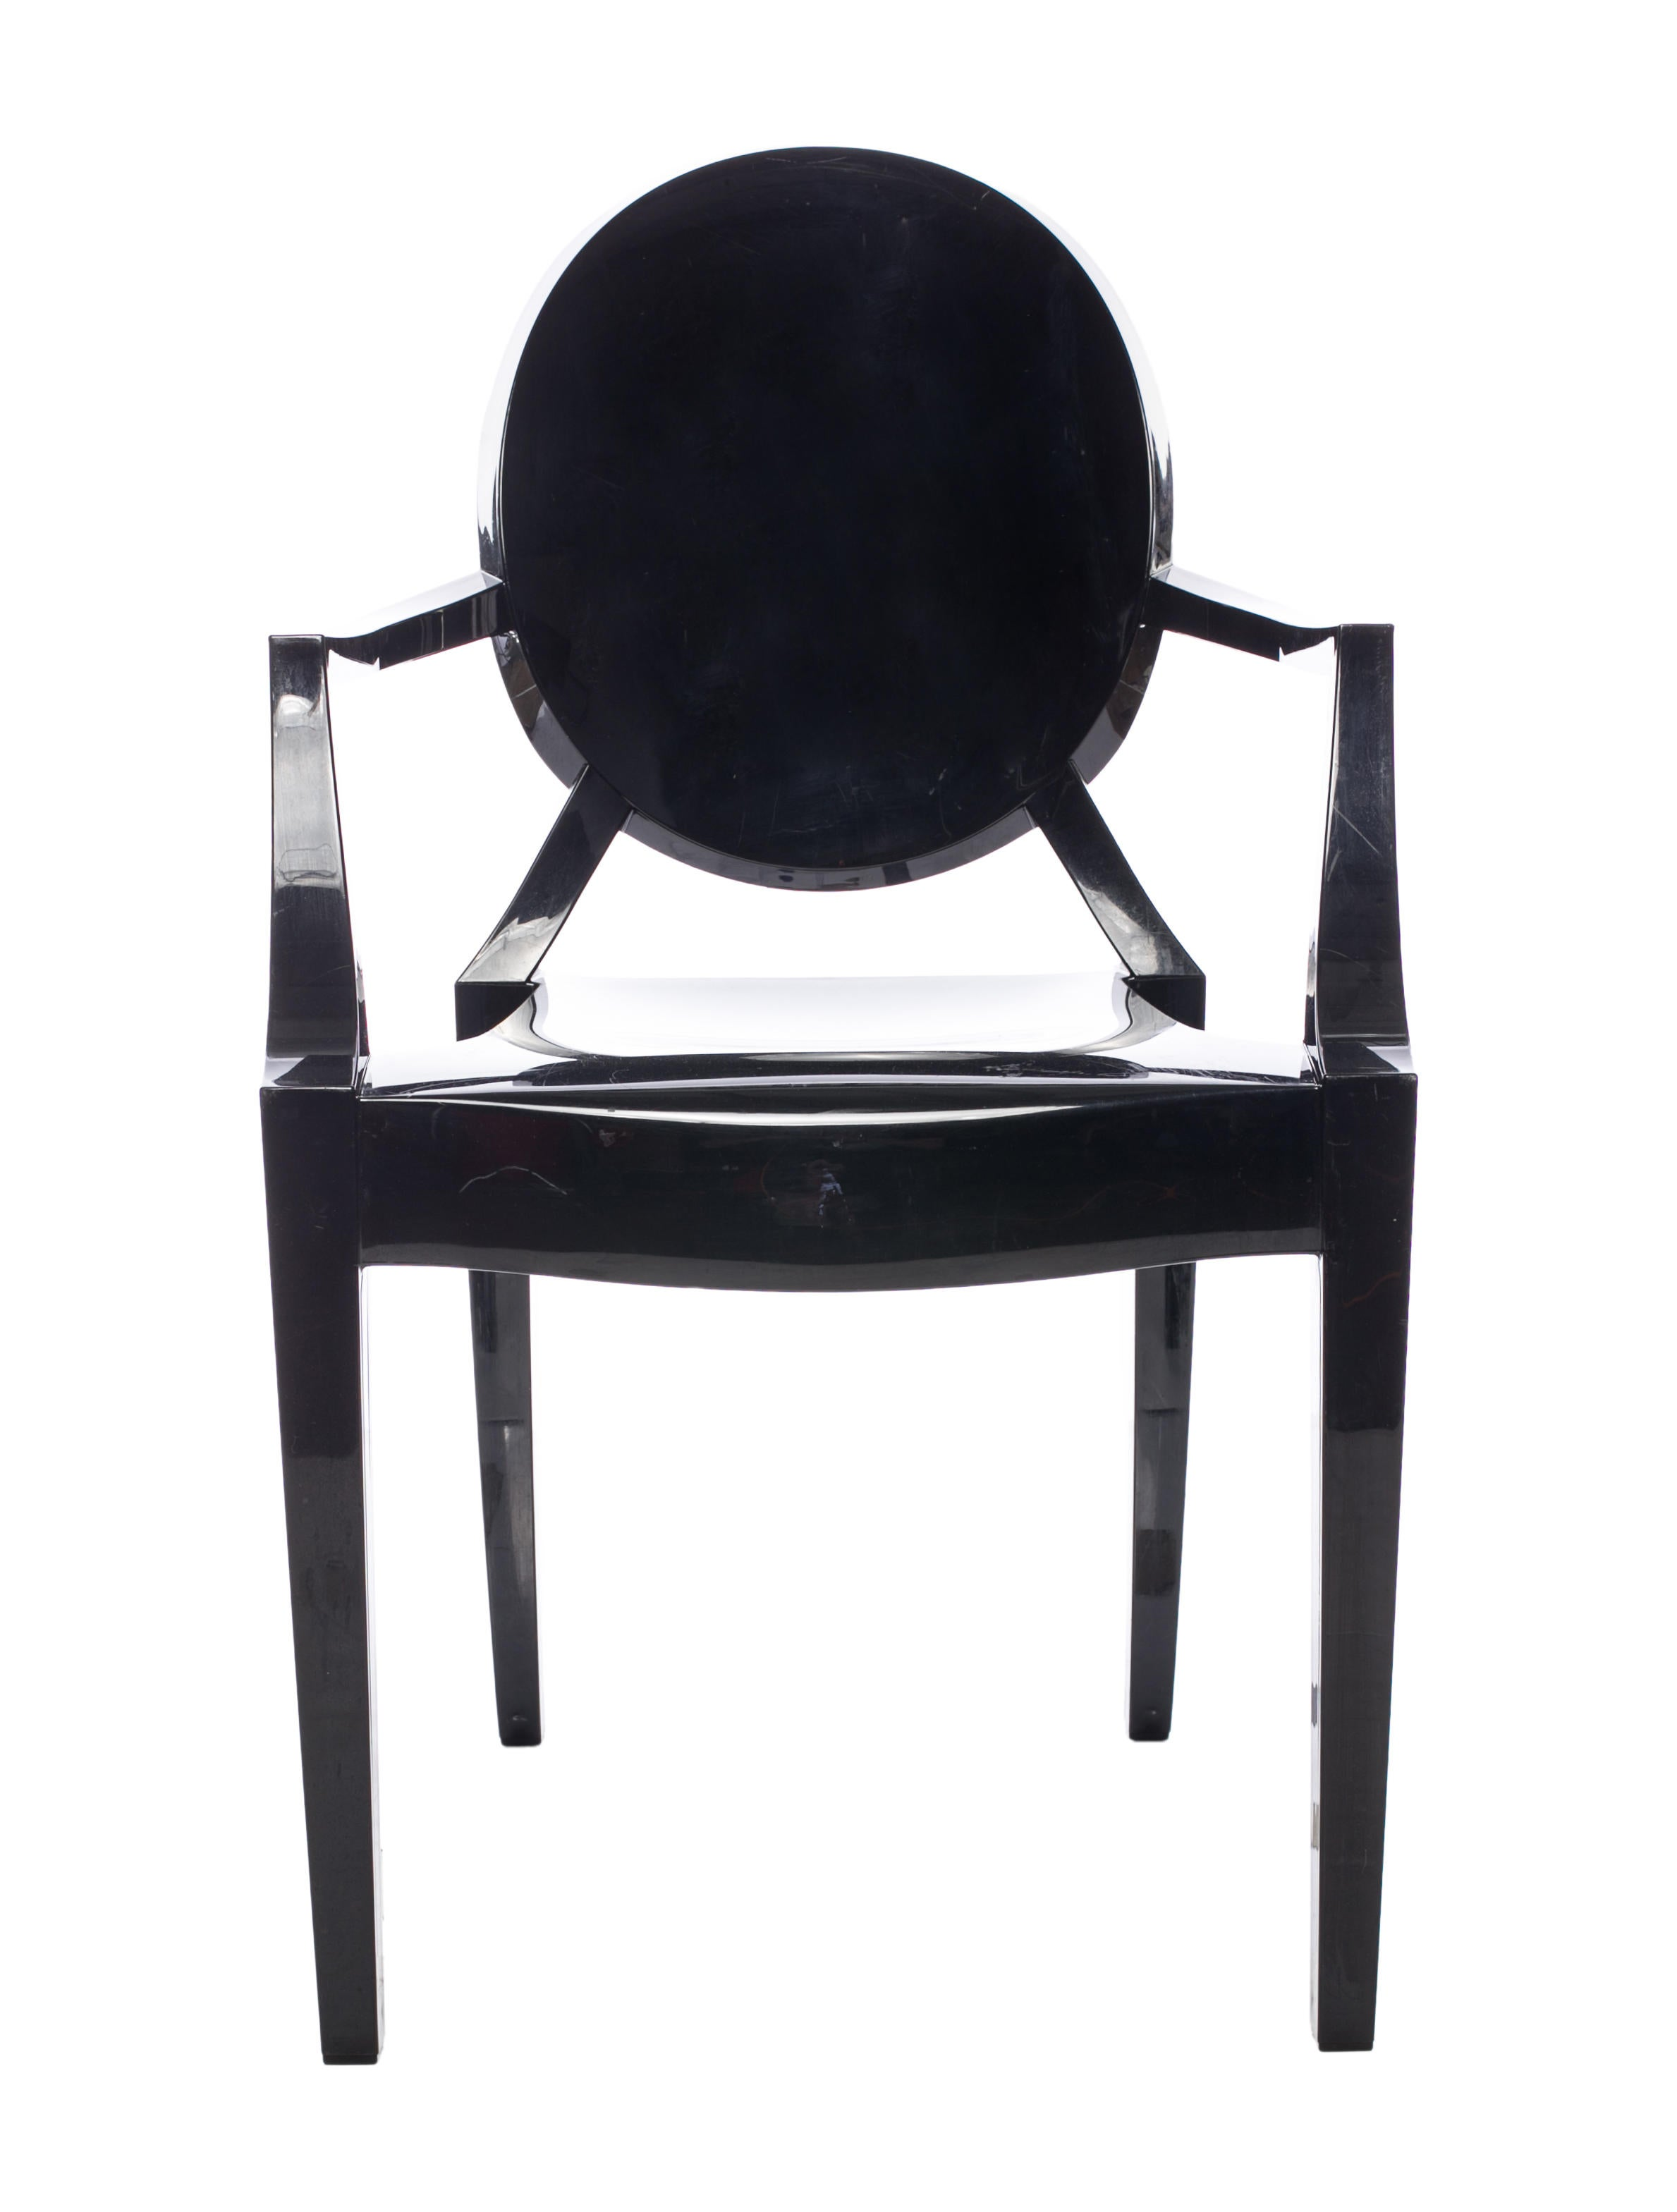 philippe starck louis ghost chair set furniture ppe20024 the realreal. Black Bedroom Furniture Sets. Home Design Ideas